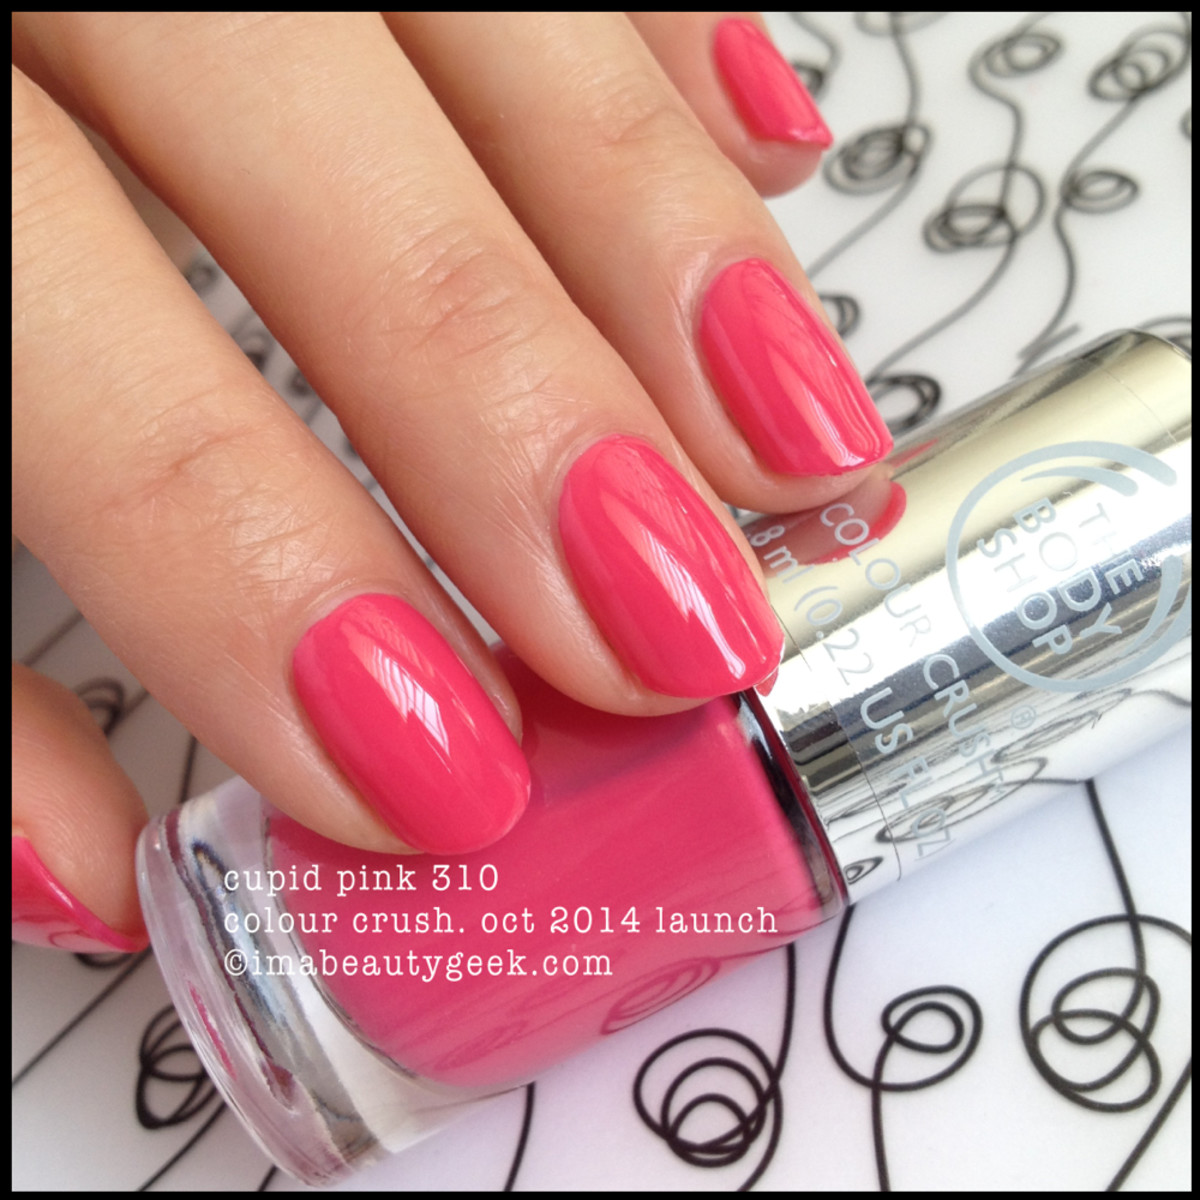 Body Shop Colour Crush Cupid Pink 310 Polish